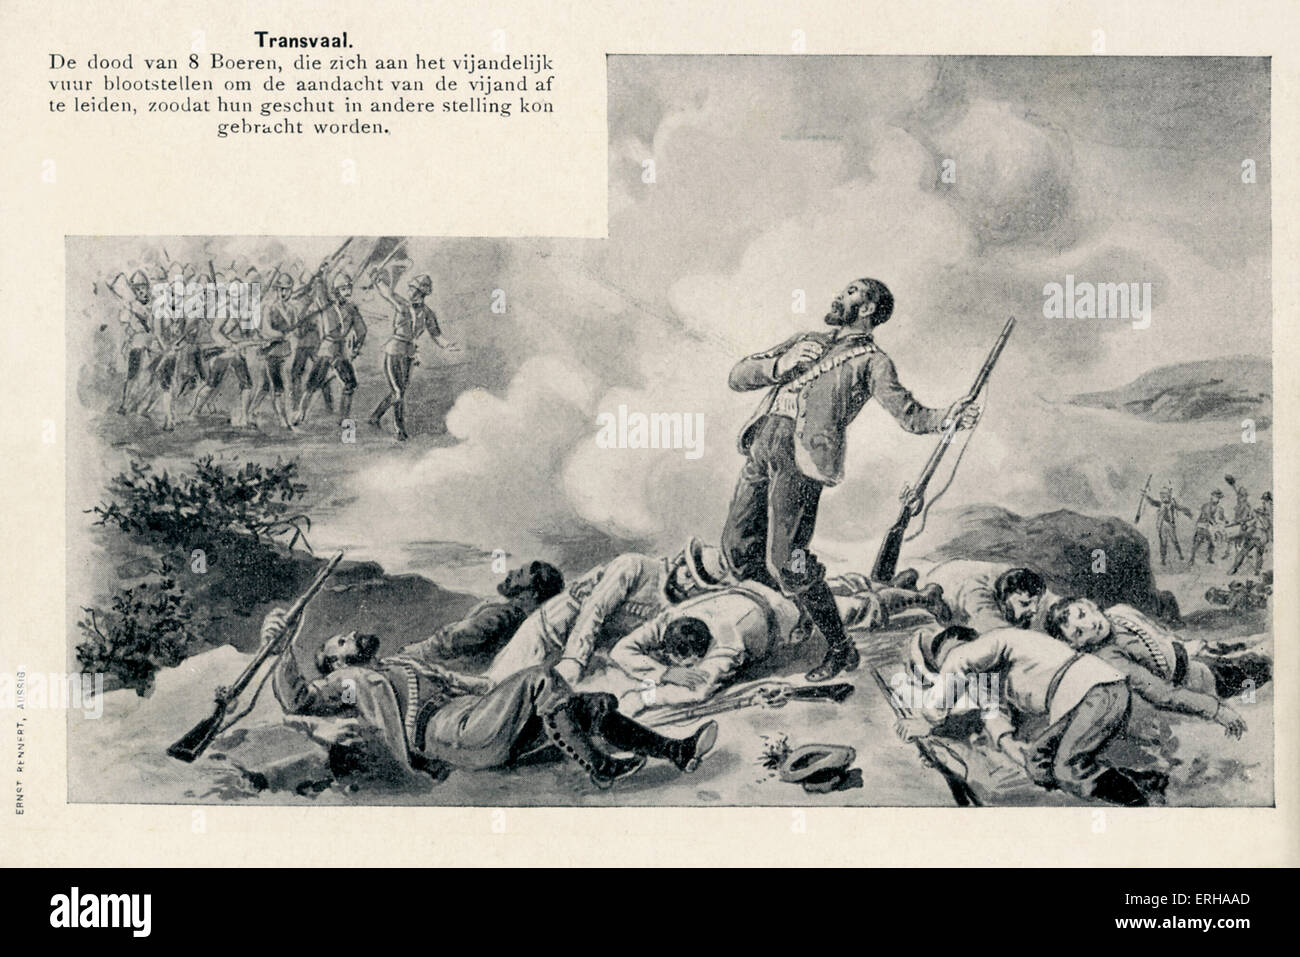 Death of Eight Boer Soldiers at the hands of British colonial forces during the Second Boer War (1899-1902) in Transvaal. - Stock Image